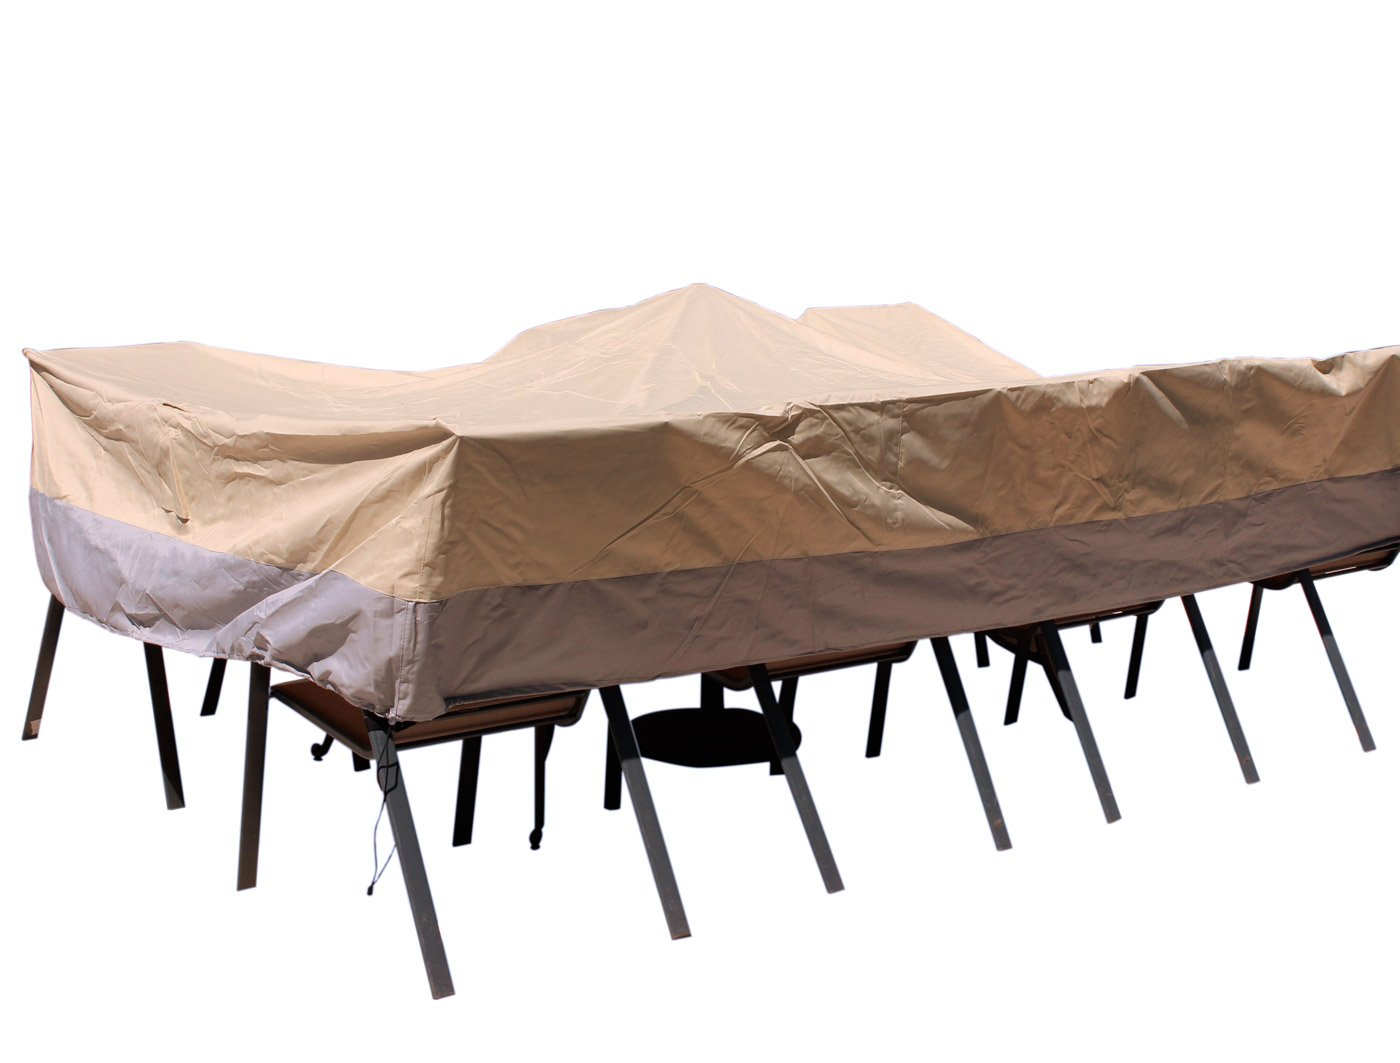 Yukon Glory Original Original 8255 Premium Small Table Set Cover With Water Resistant Heavy Duty Material